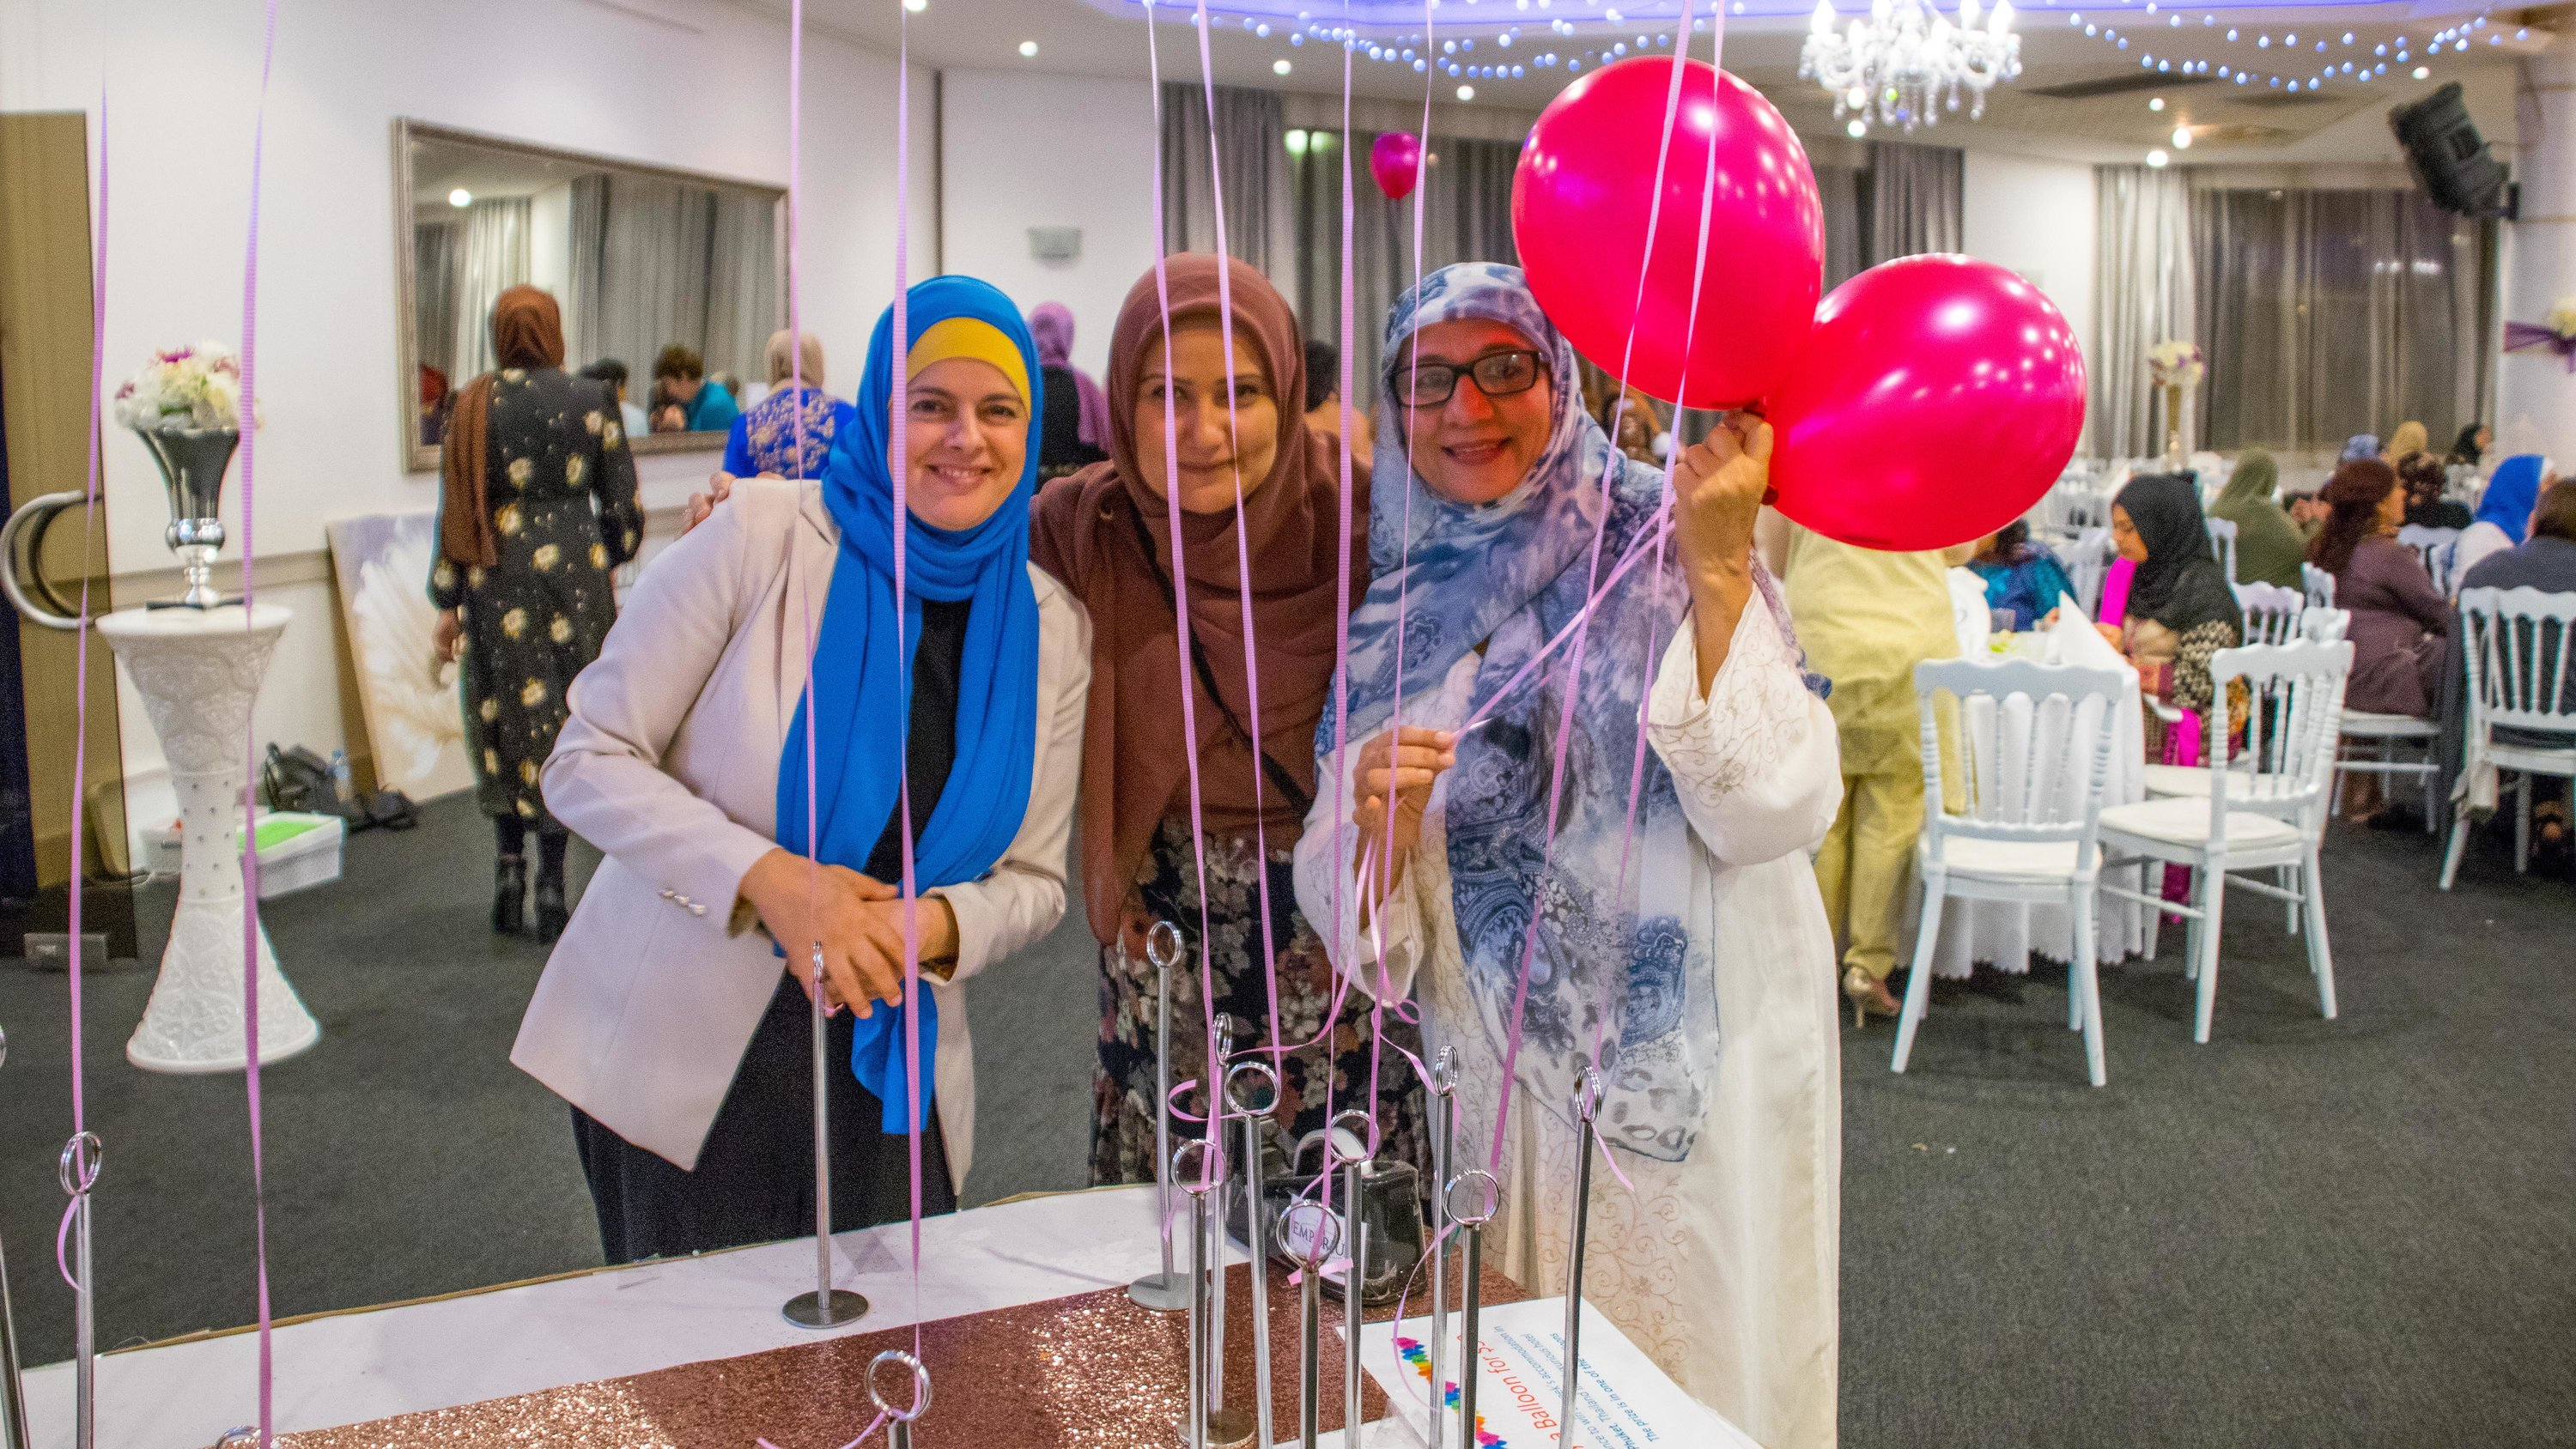 rsz_mahbobas_promise_mothers_day_dinner_-_27_april_2018_4_of_179